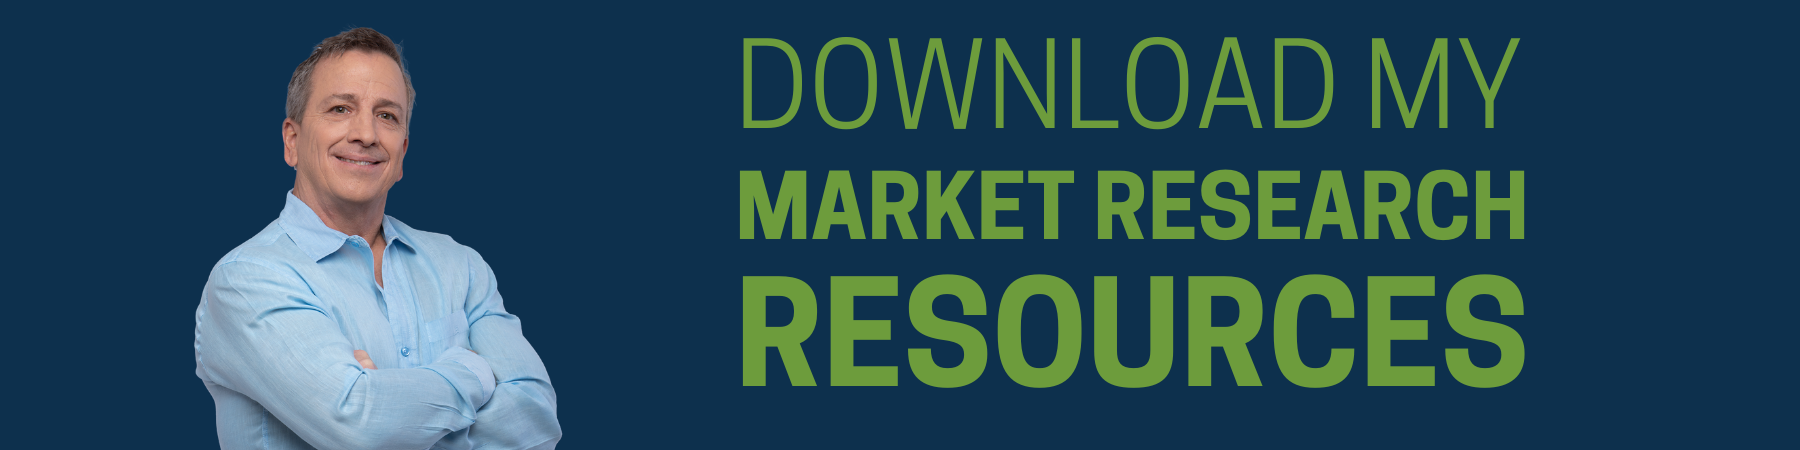 Market Research Resources banner